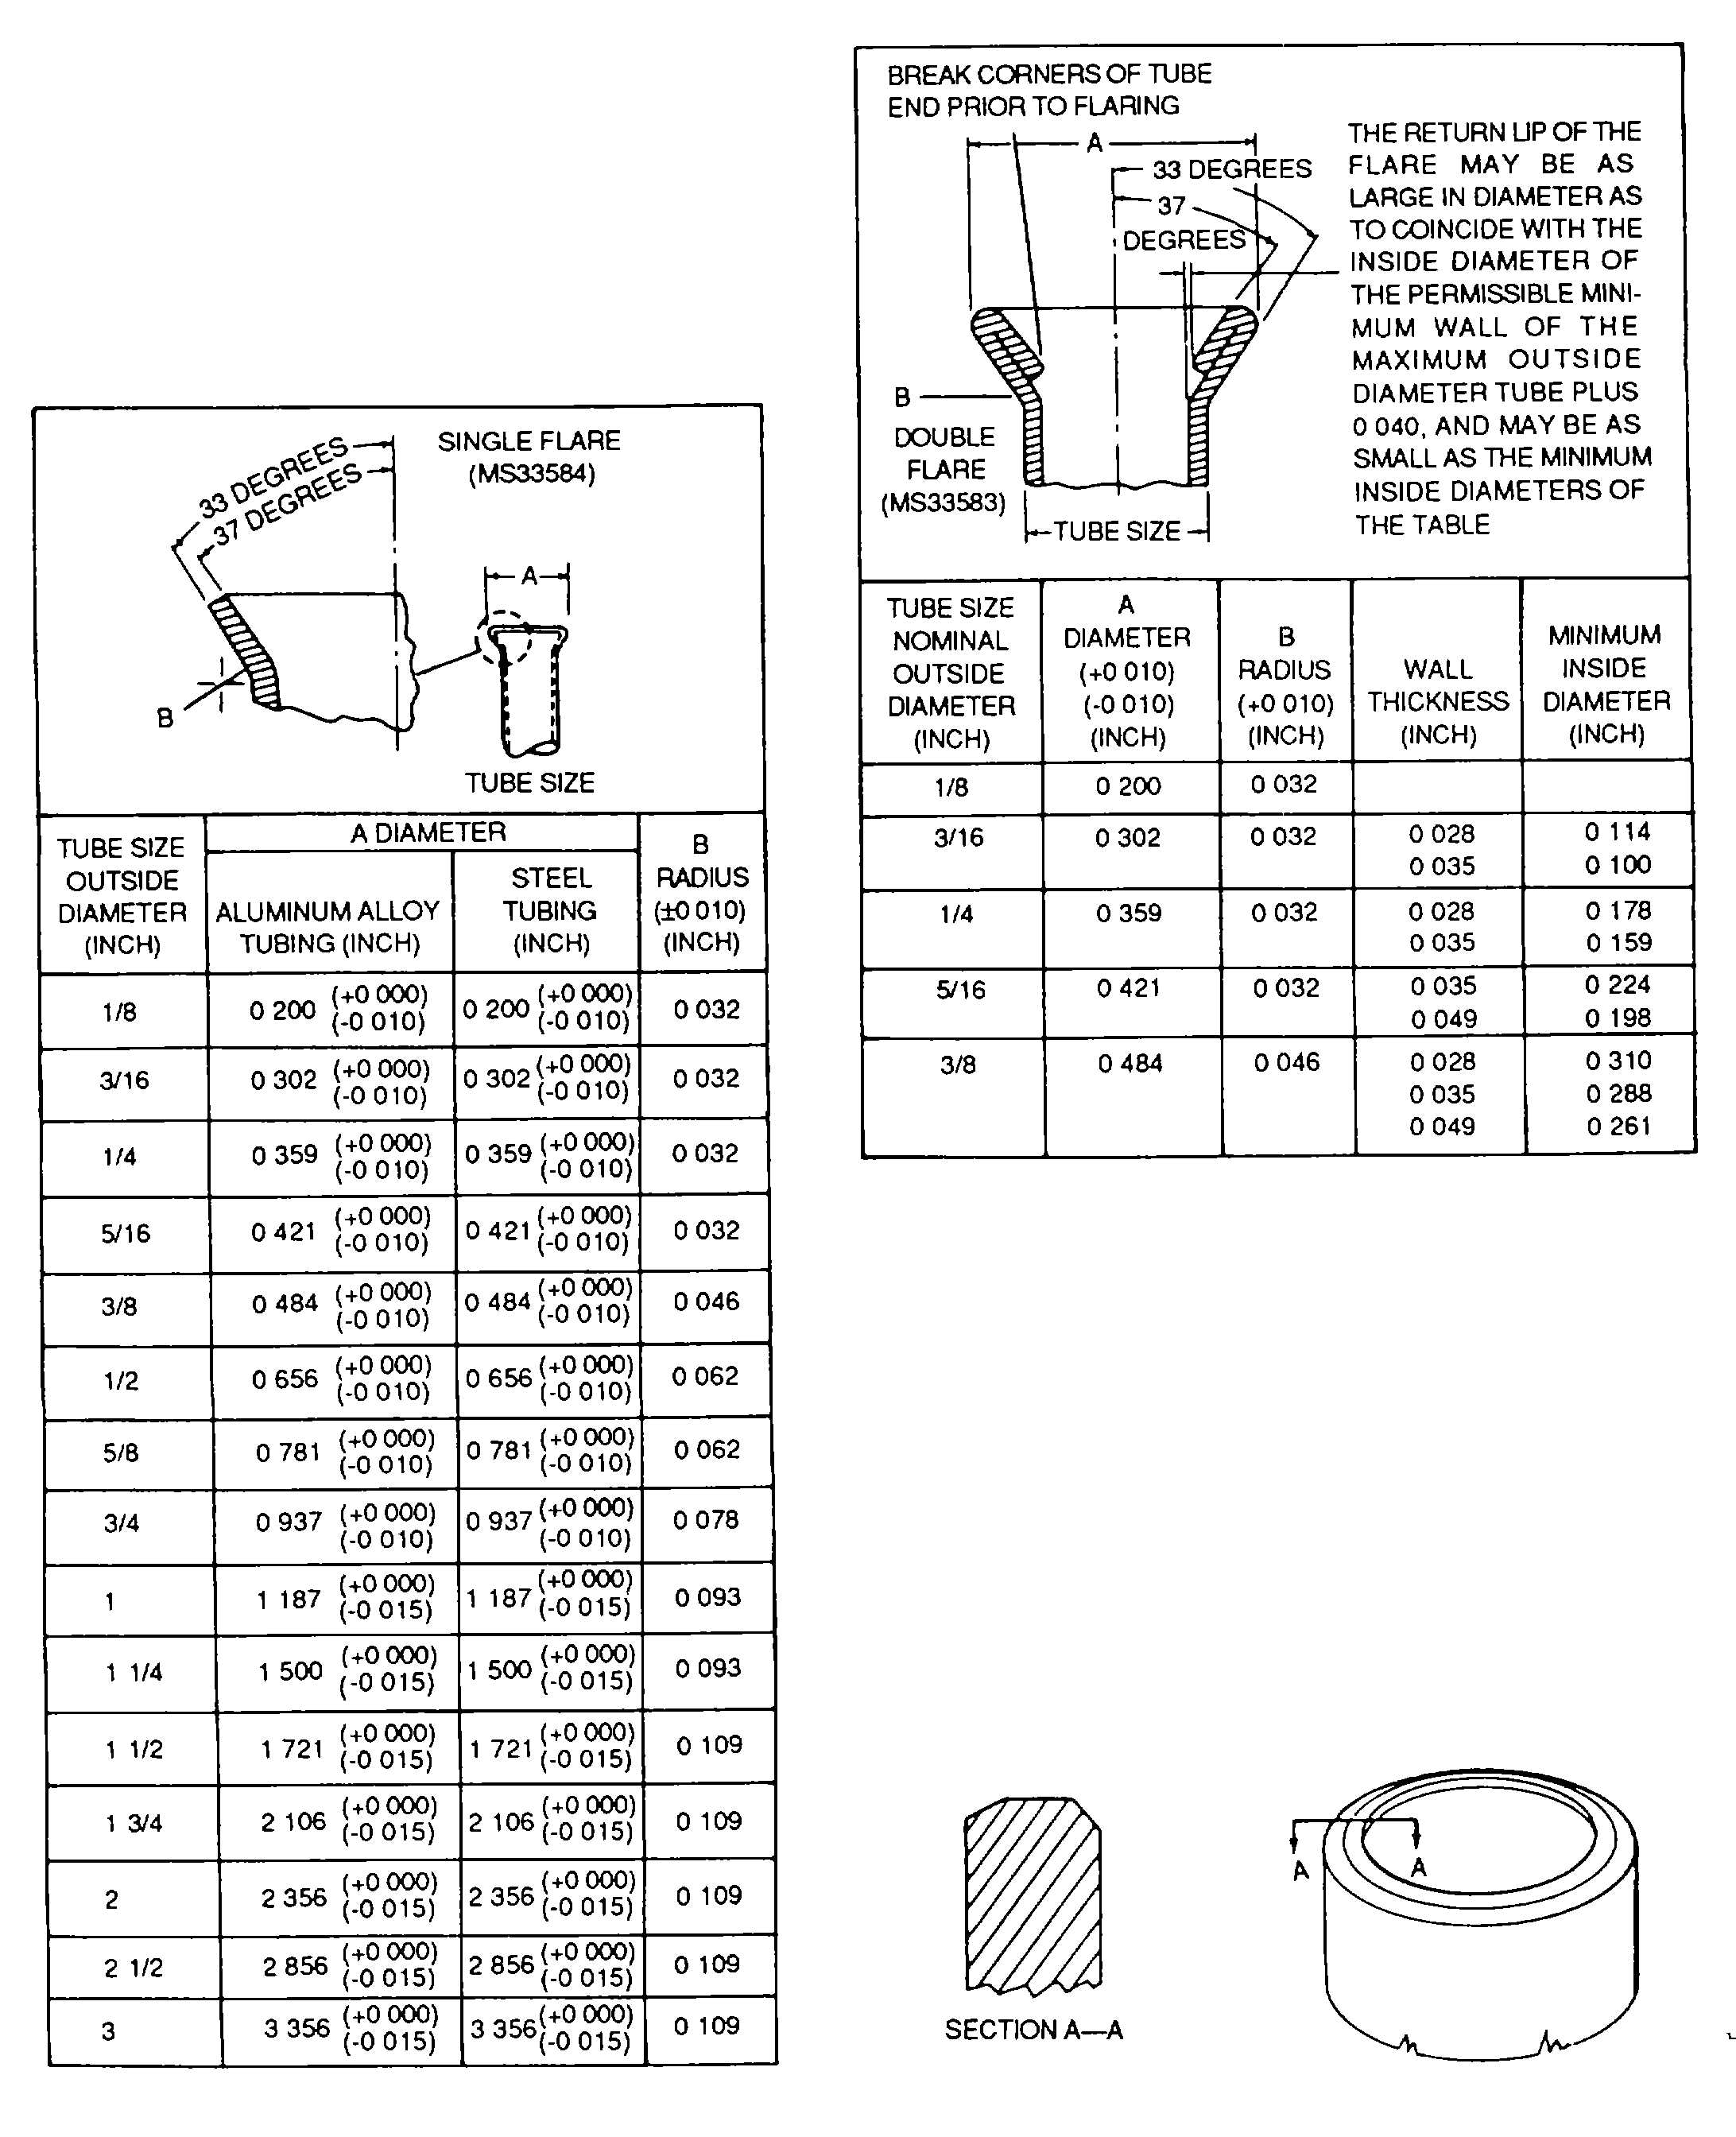 Figure 4-7. Dimensions for Single-Flared Tubing